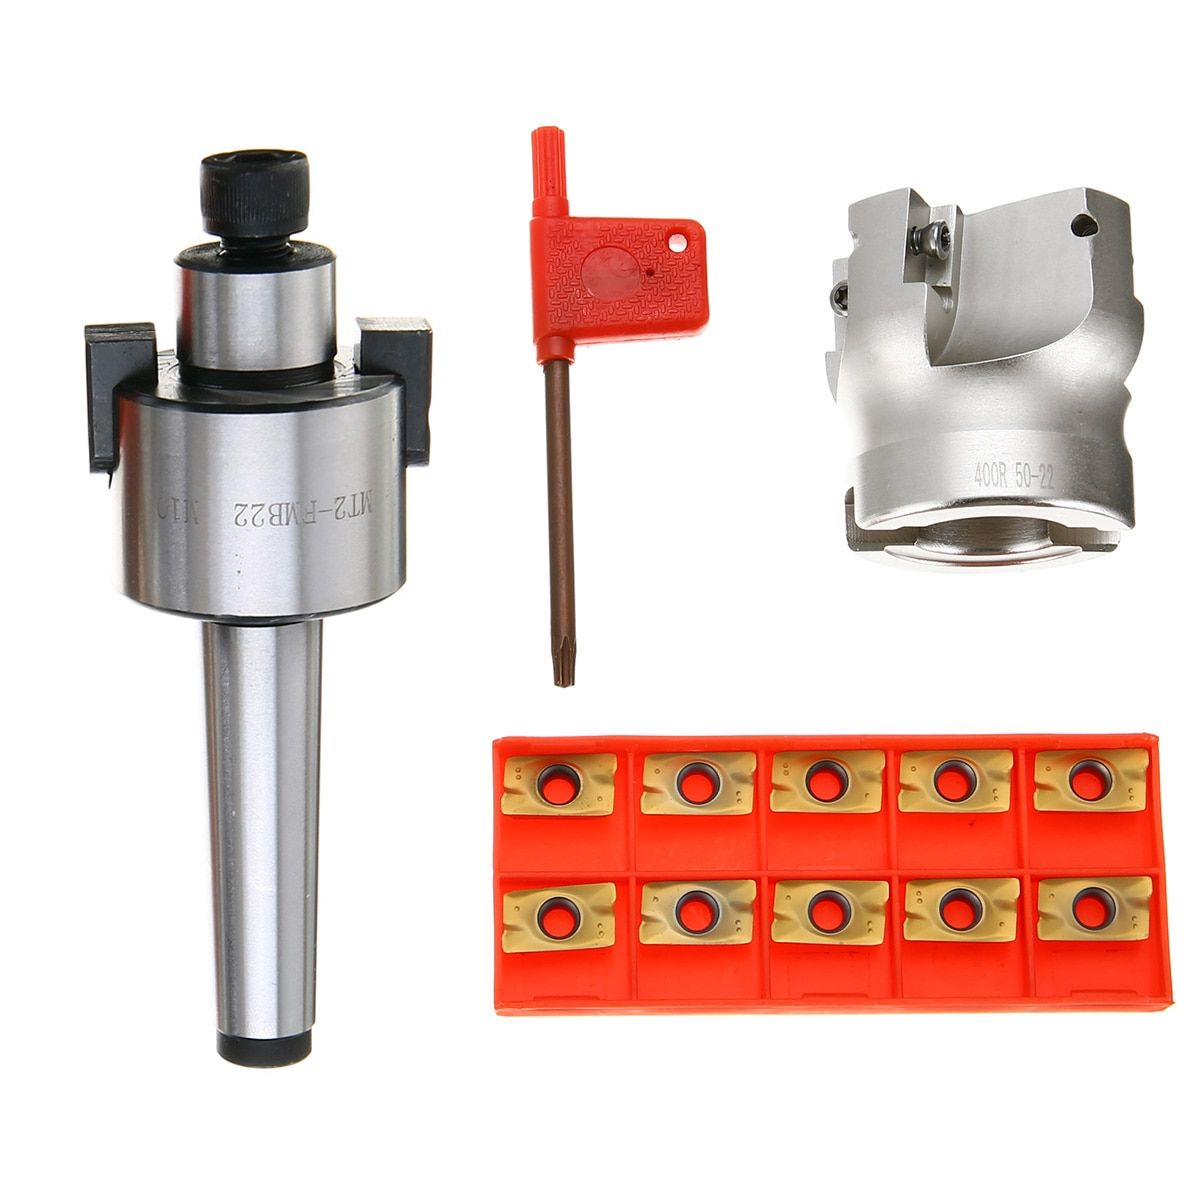 MT2 400R 50mm Face End Mill Cutter 4 Flutes + 10pcs APMT1604 Carbide Inserts with Wrench For Power Tool